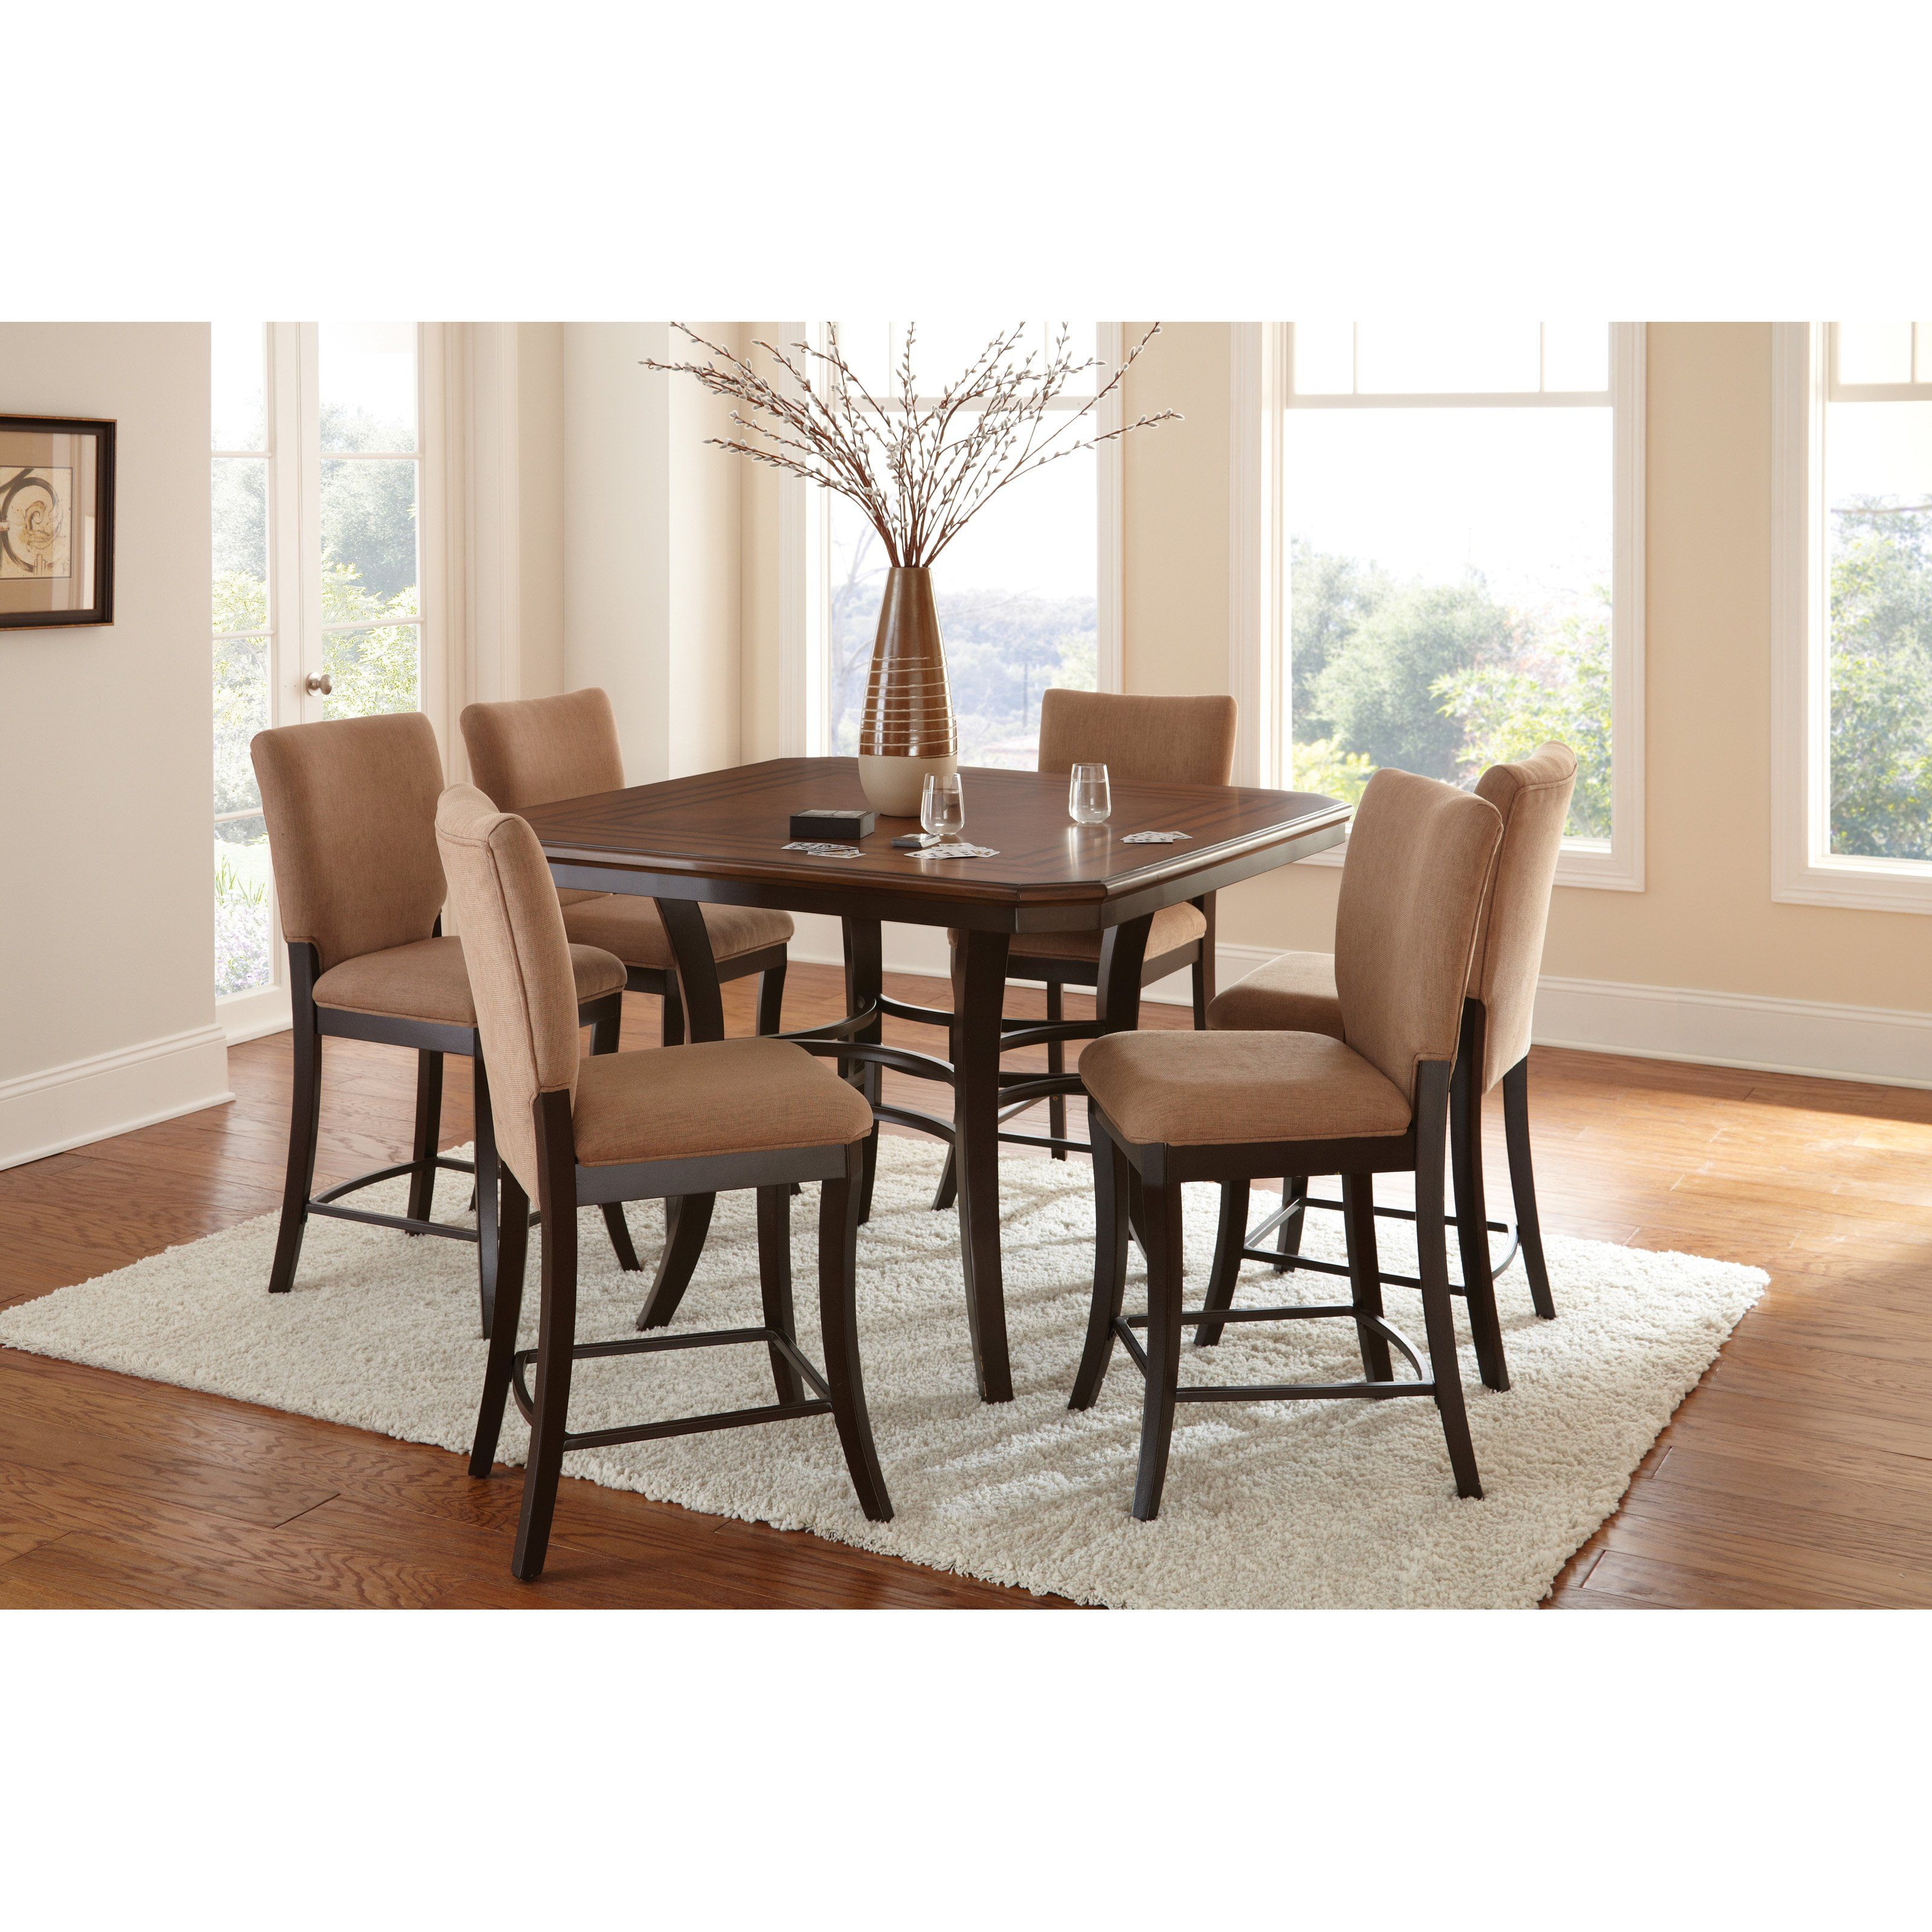 dining standard height of set brilliant sets osmond pc ideas omaha furniture donny kirkwood piece room counter grey